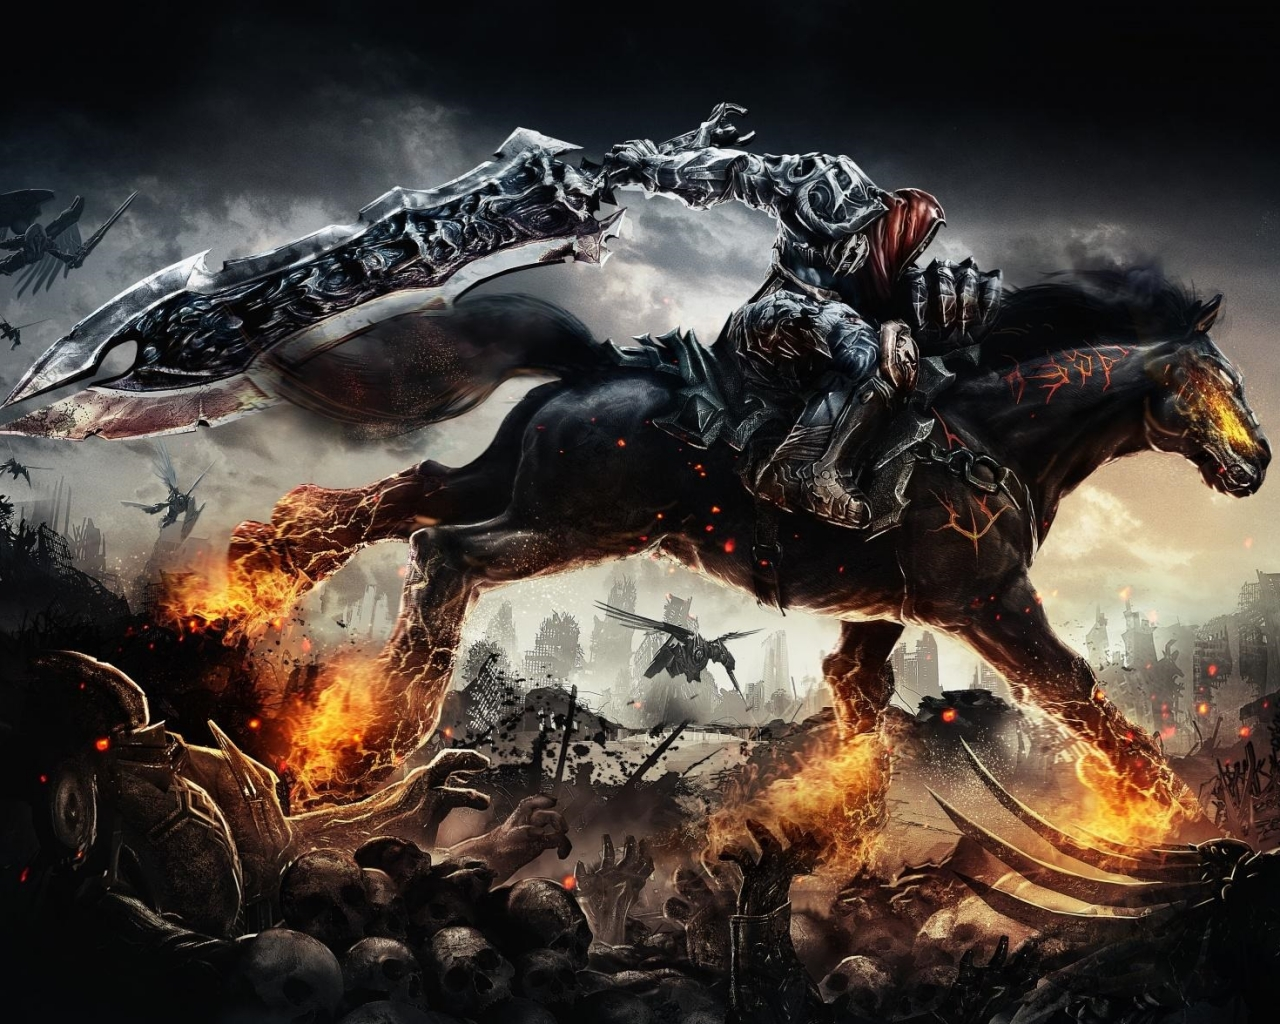 Darksiders War Wallpaper By: Darksiders War Rides Wallpaper 1280x1024